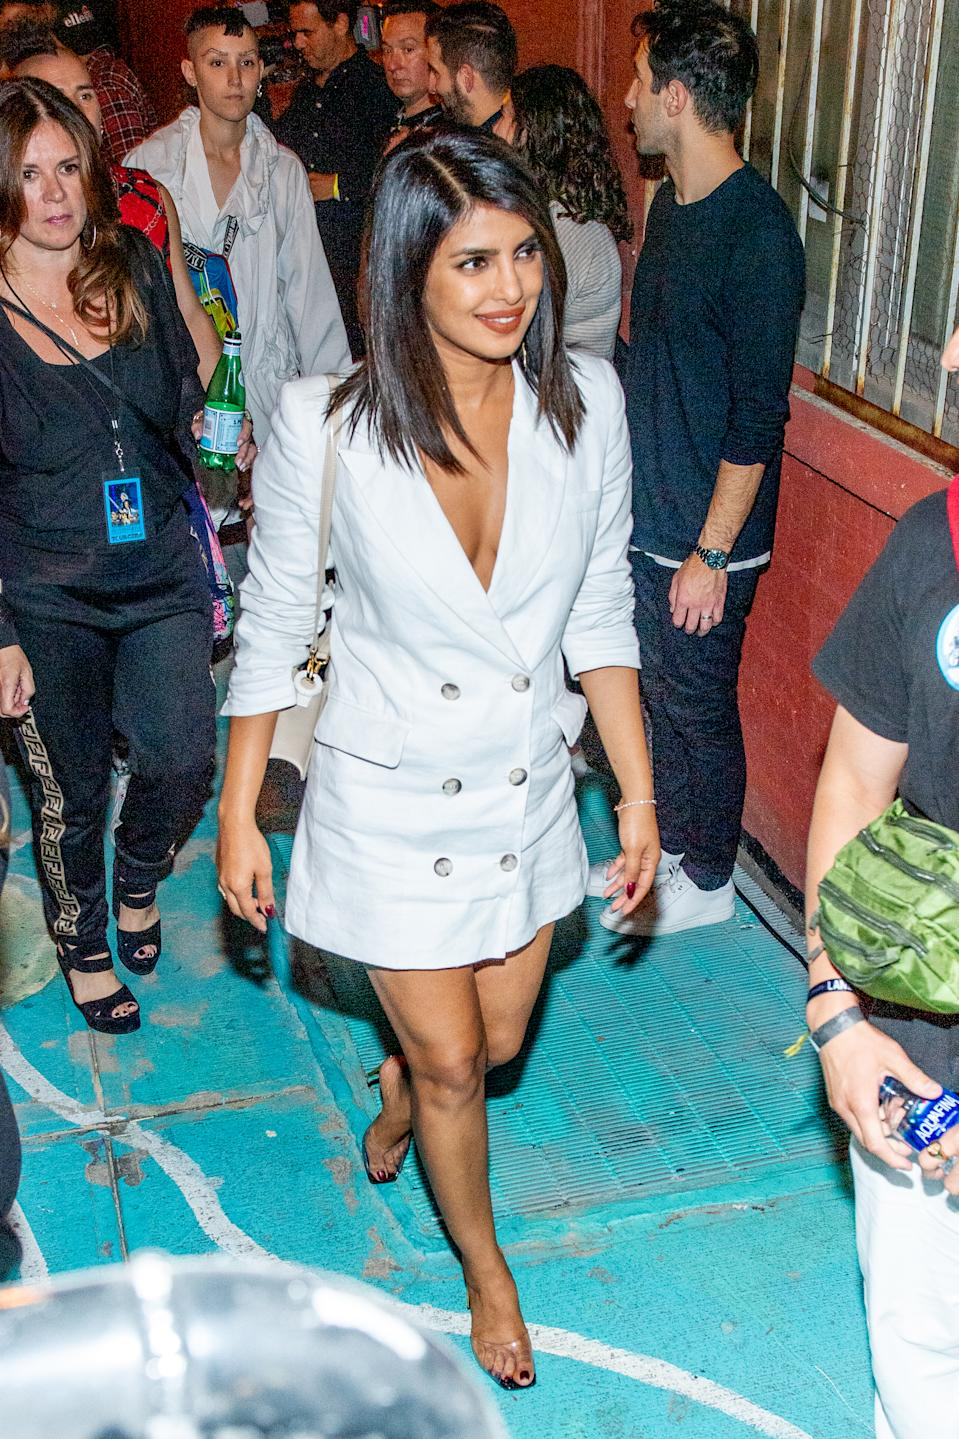 NEW YORK, NEW YORK - AUGUST 29: Priyanka Chopra attends Nick Jonas x John Varvatos Villa One Tequila Launch at John Varvatos Bowery NYC on August 29, 2019 in New York City. (Photo by Roy Rochlin/Getty Images)